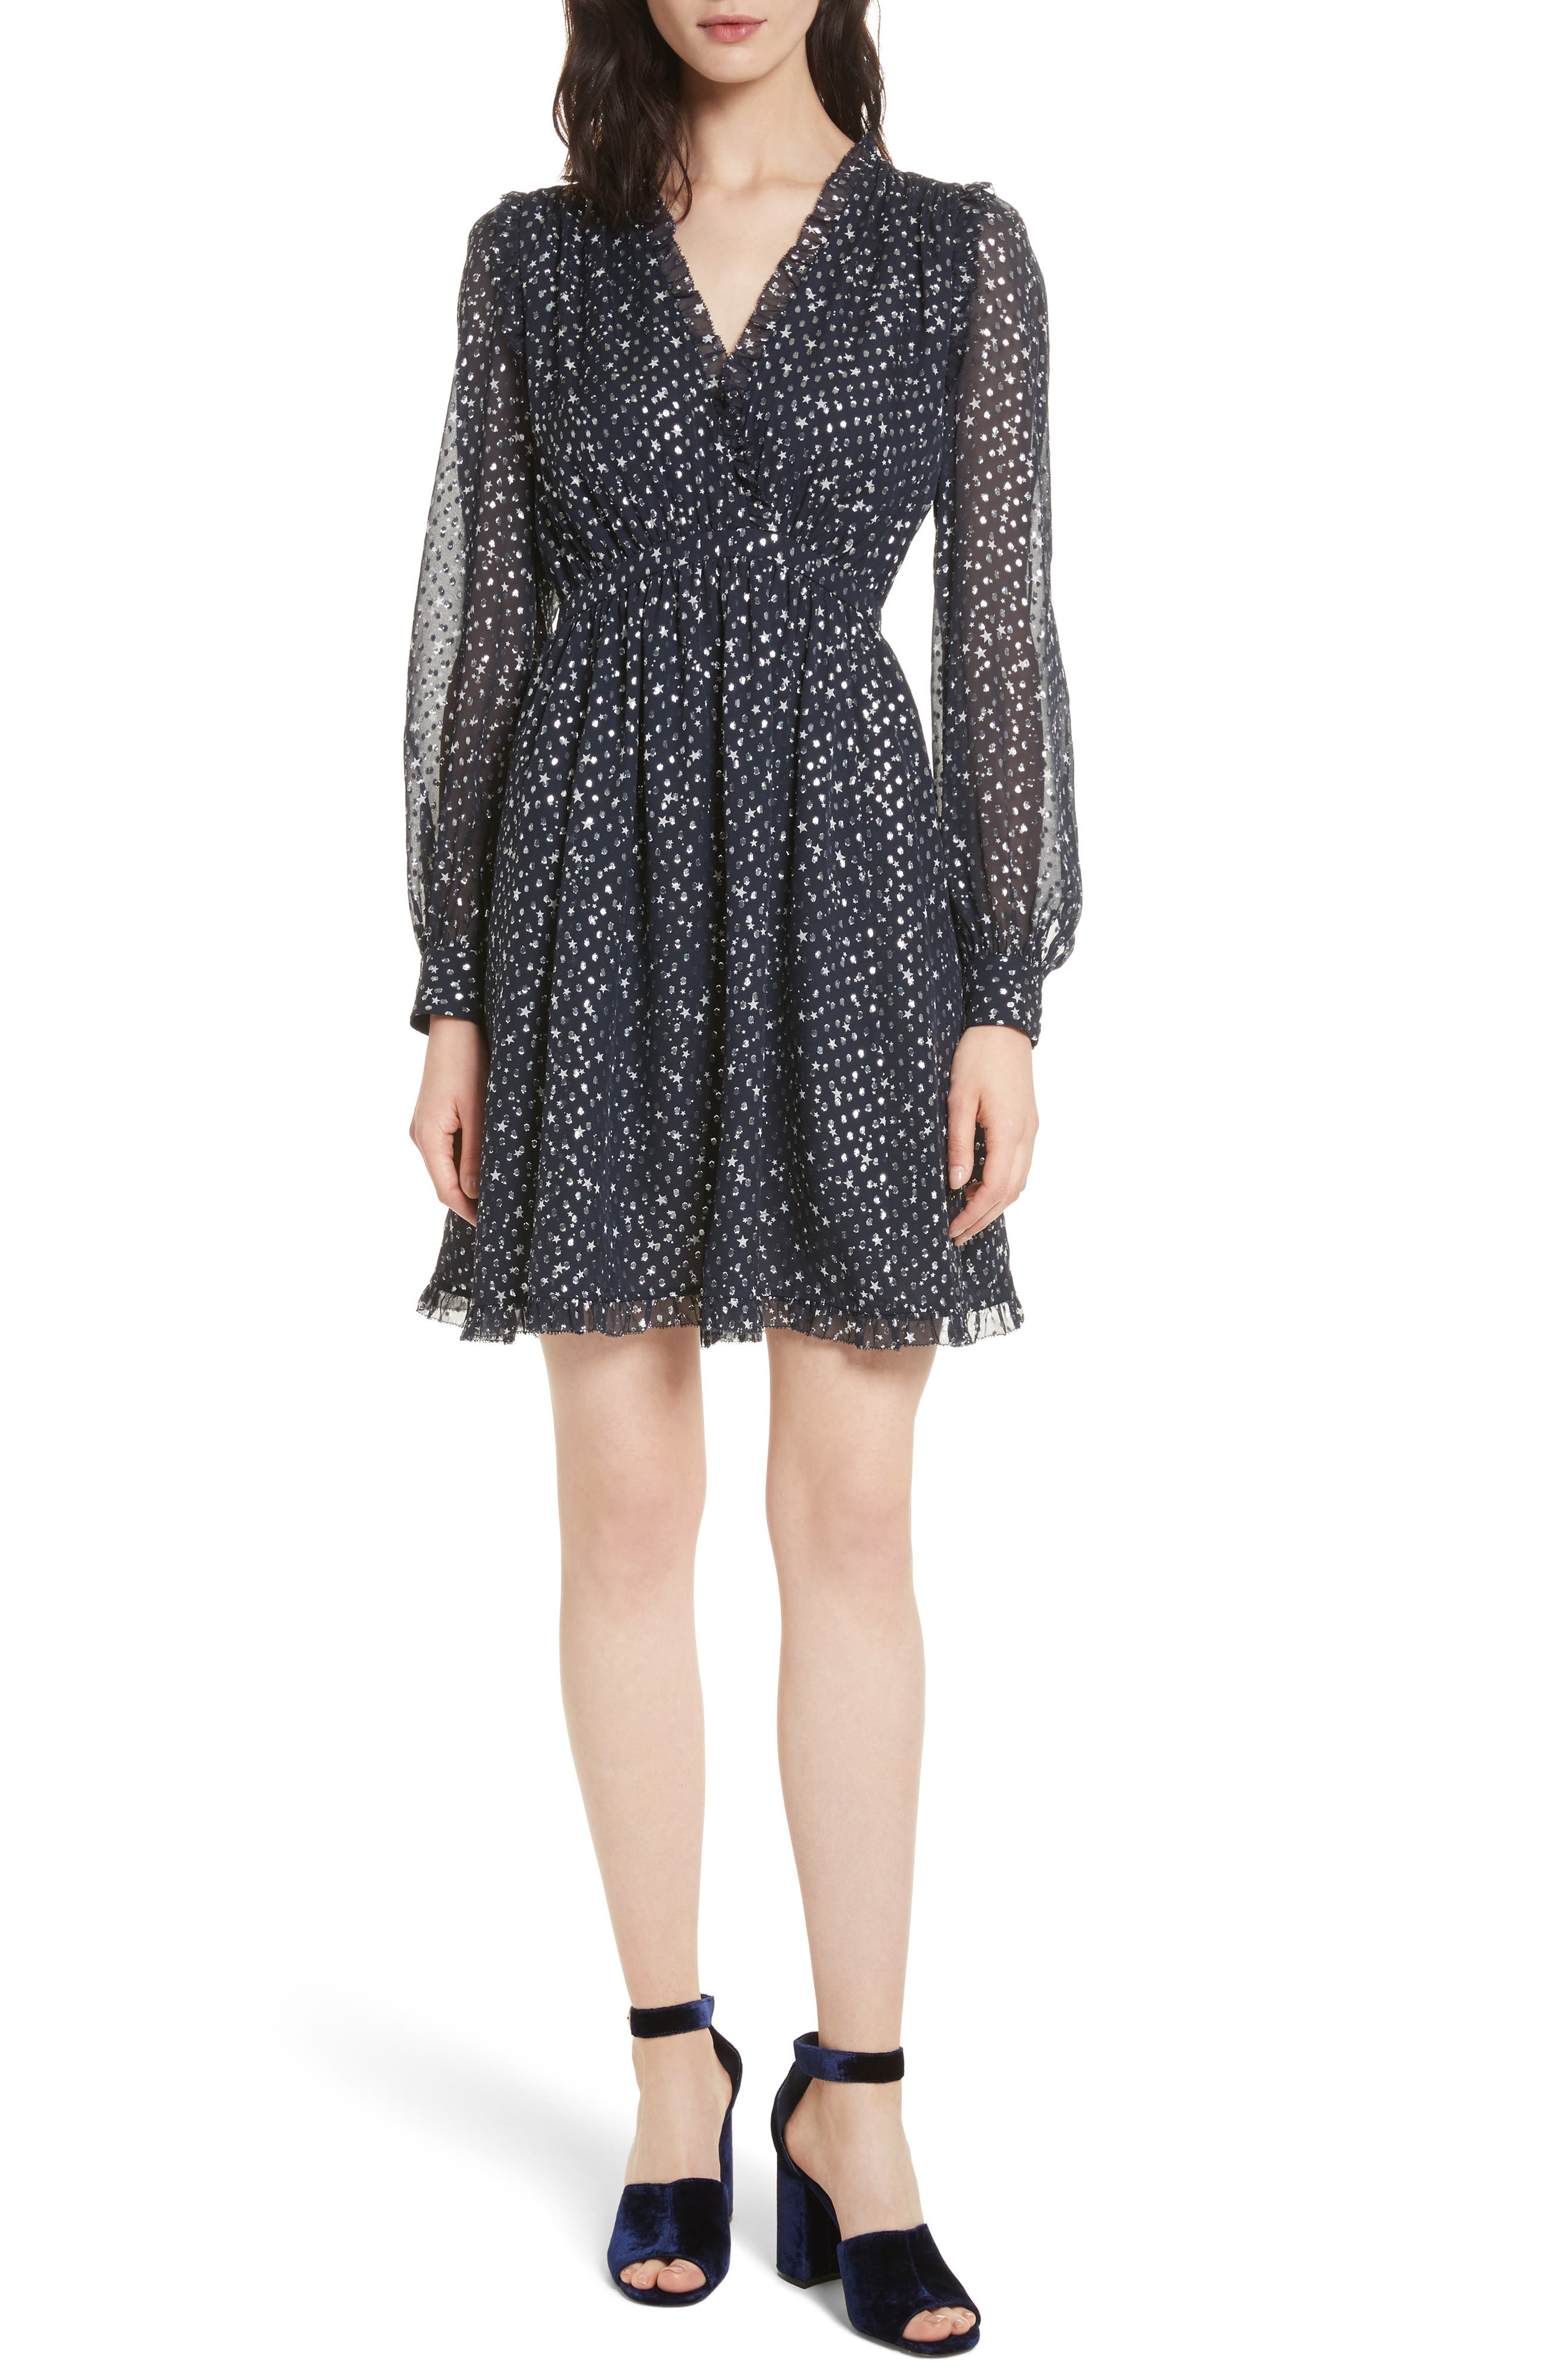 kate spade new york night sky dot dress